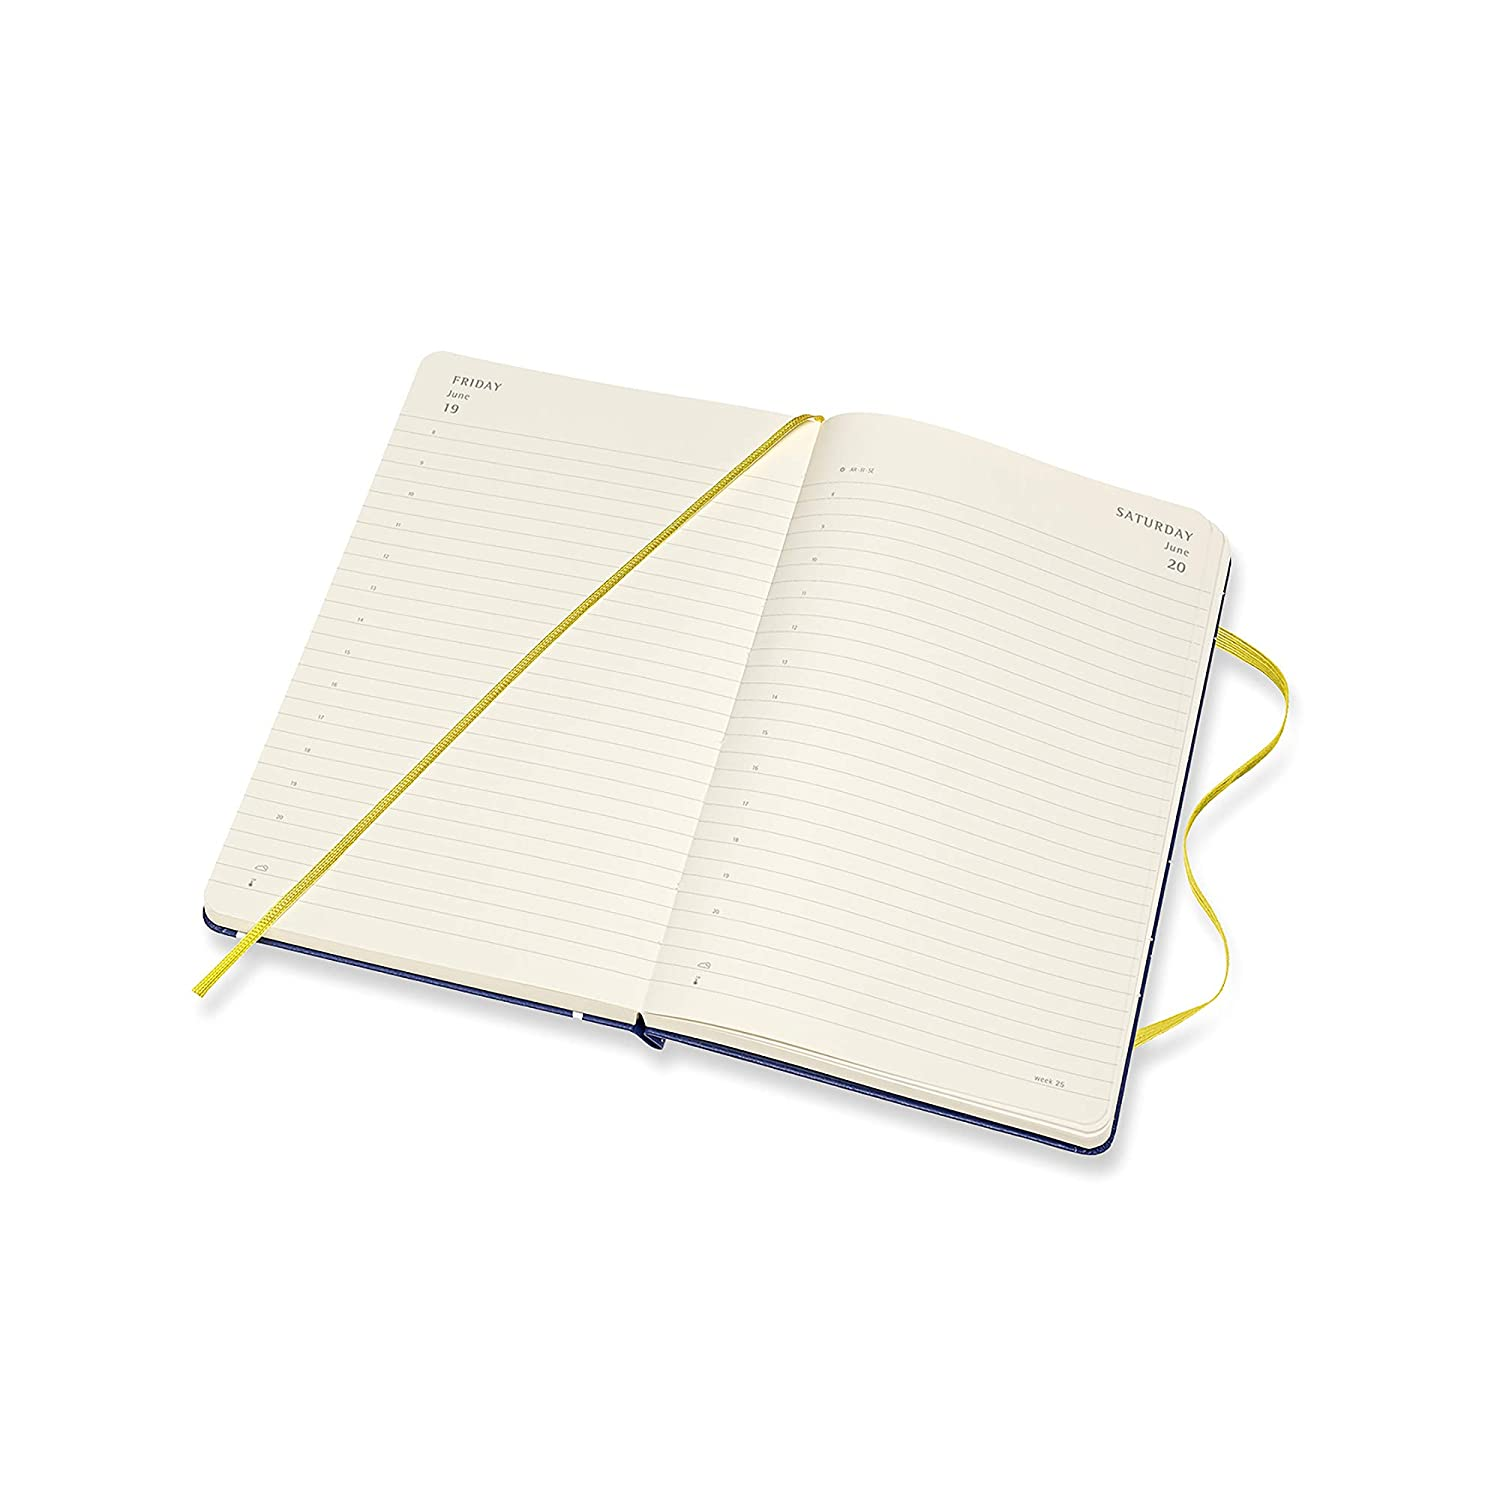 144 Pages Moleskine Weekly Schedule 12 Months 2020 The Little Prince Special Edition with Rigid Cover and Elastic Closure Pocket Size 9 x 14 cm Fox